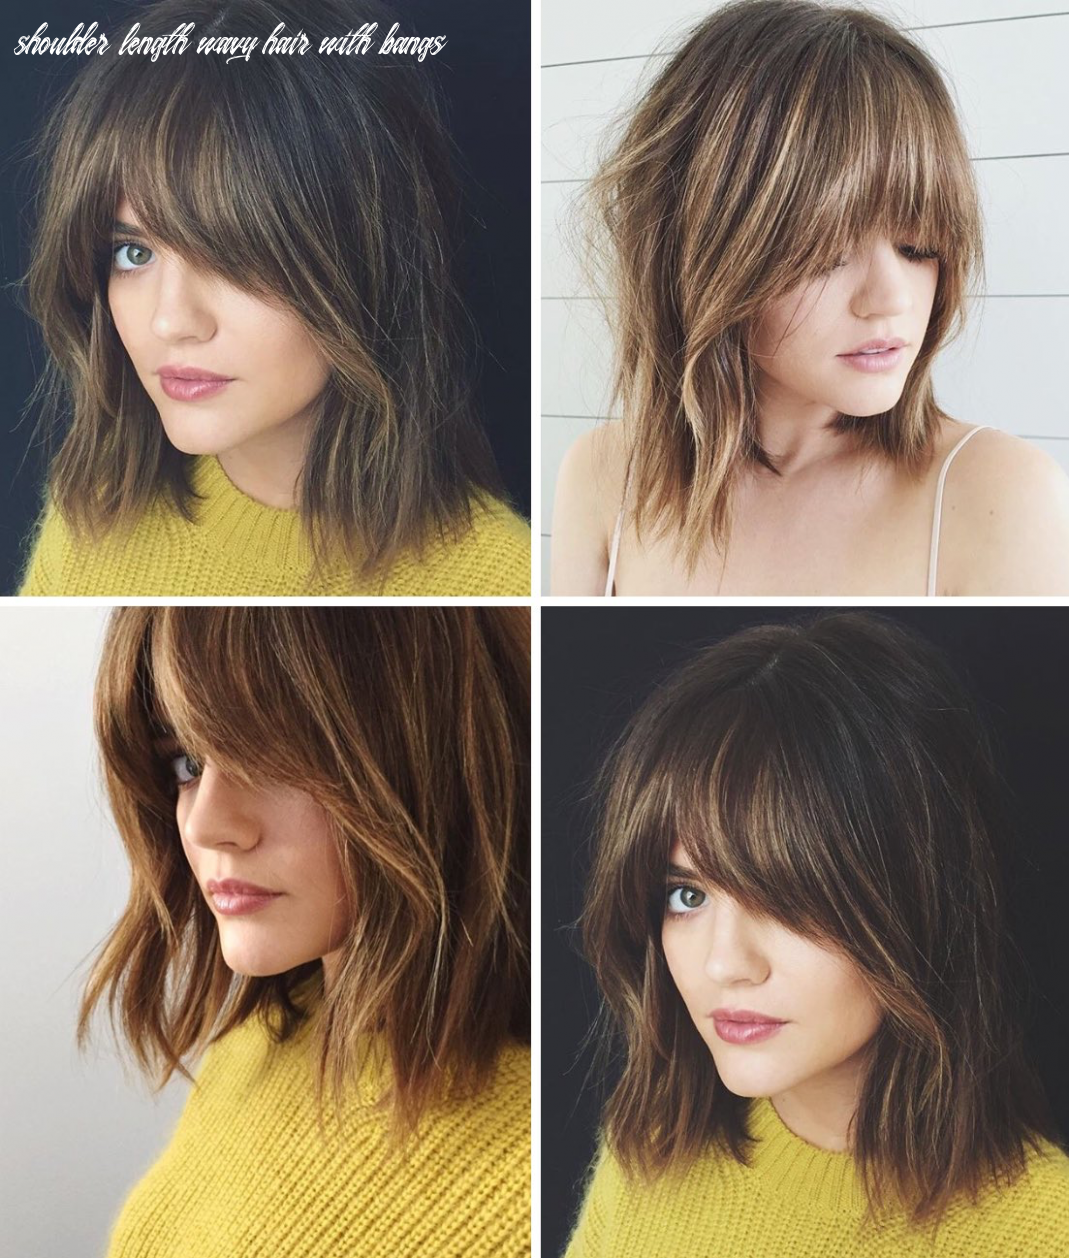 Lucy hale bangs … | coiffure, nouvelles coiffures, cheveux shoulder length wavy hair with bangs